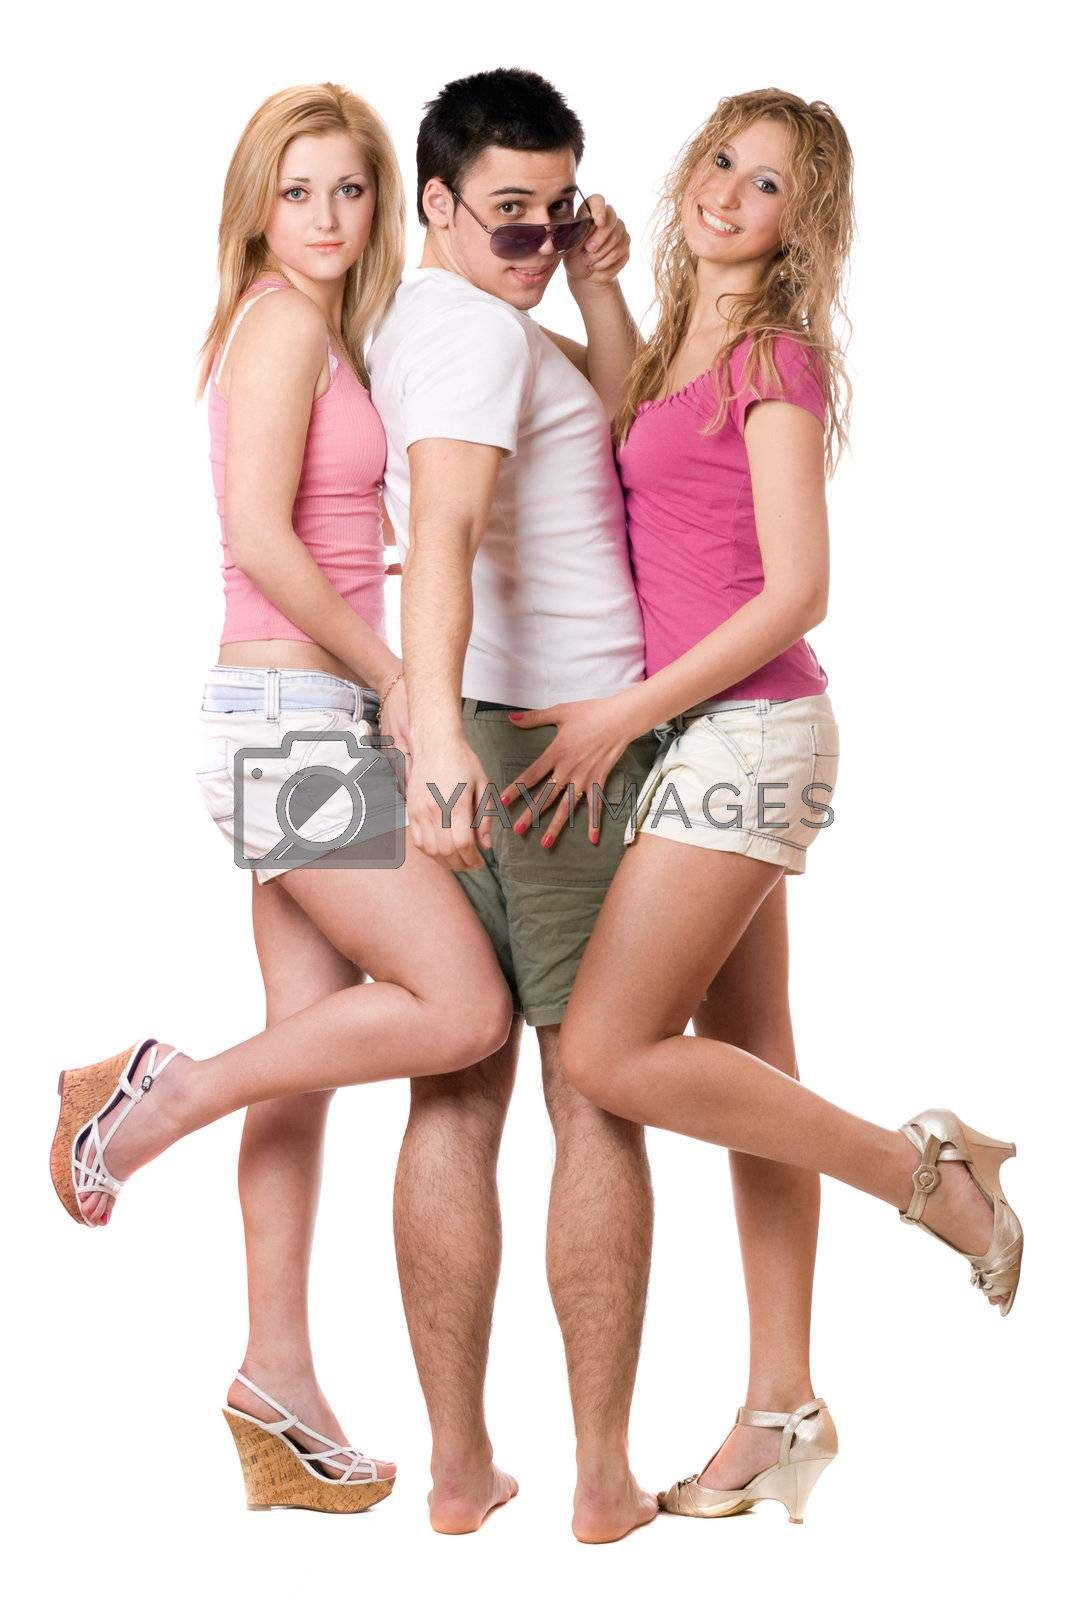 Handsome young man and two sexy girls. Isolated